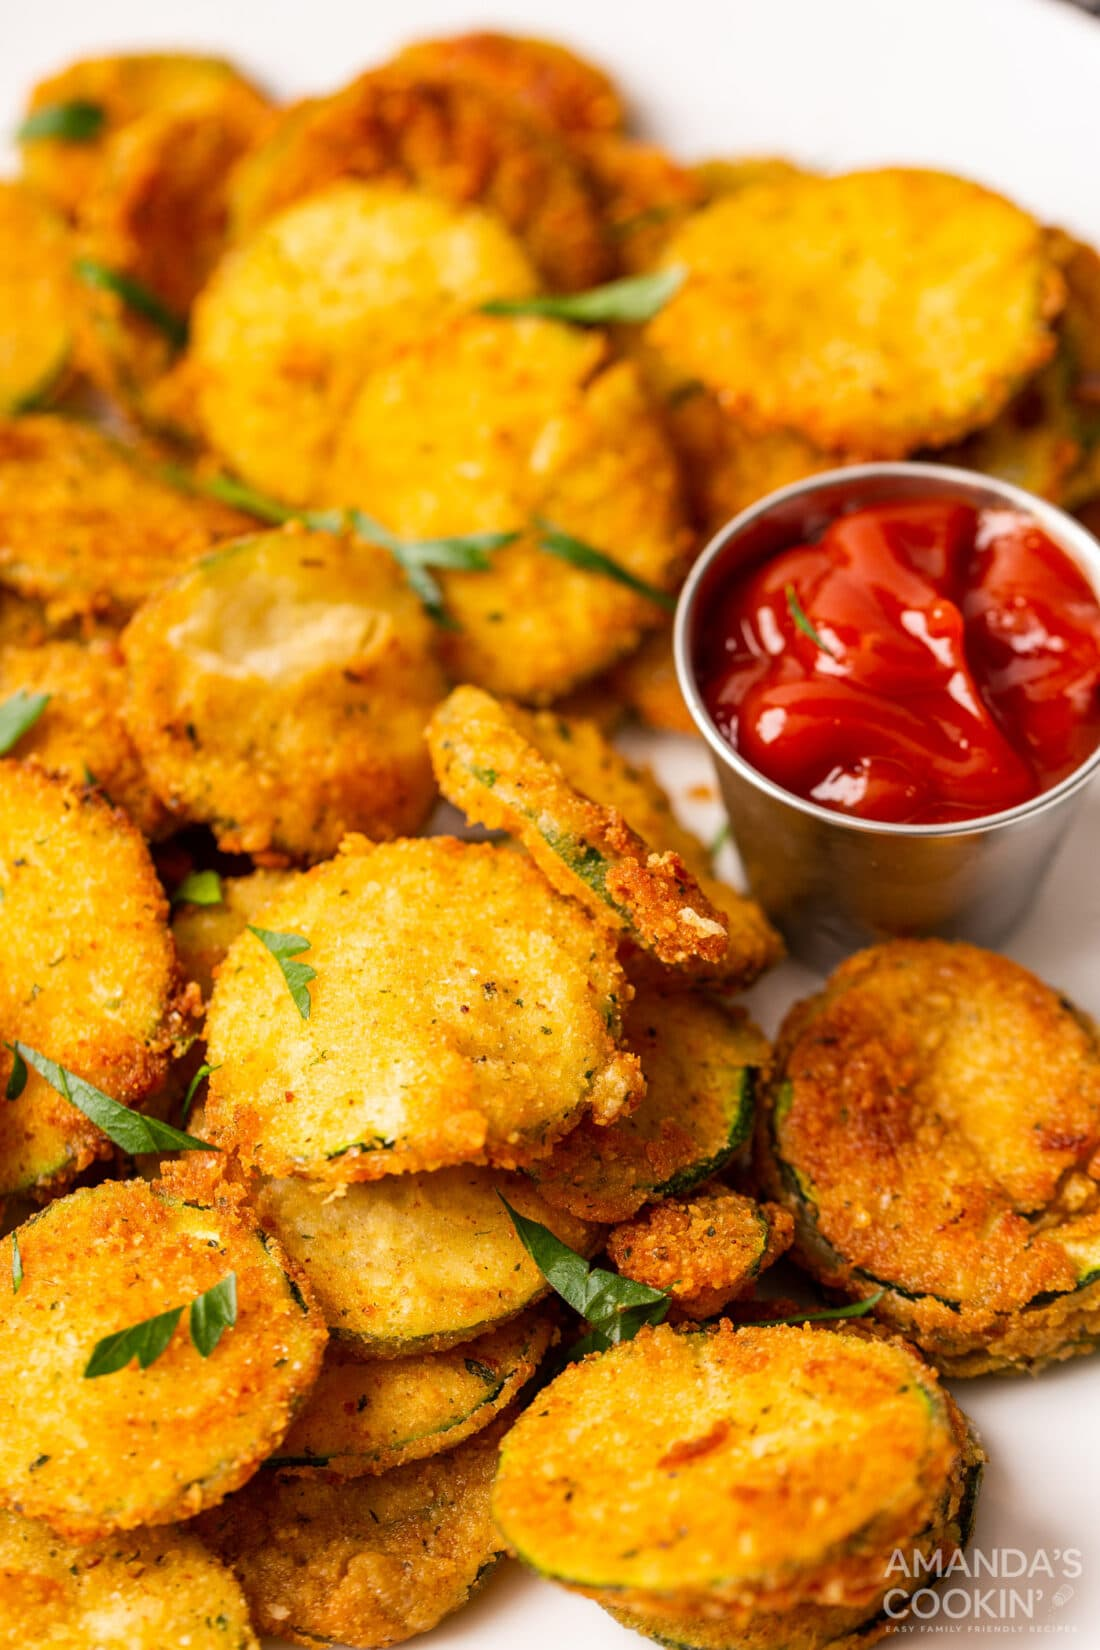 Fried Zucchini with ketchup